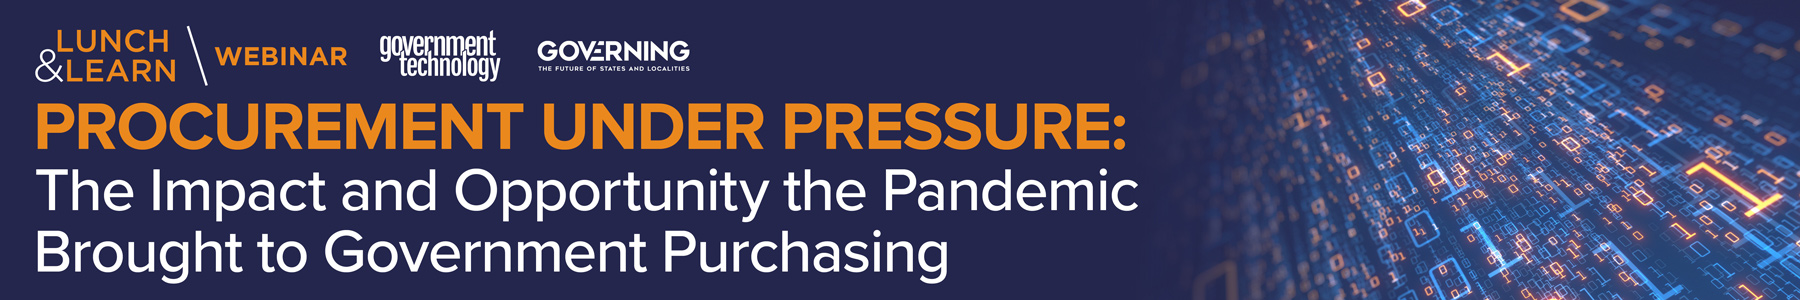 Procurement Under Pressure: The Impact and Opportunity the Pandemic Brought to Government Purchasing